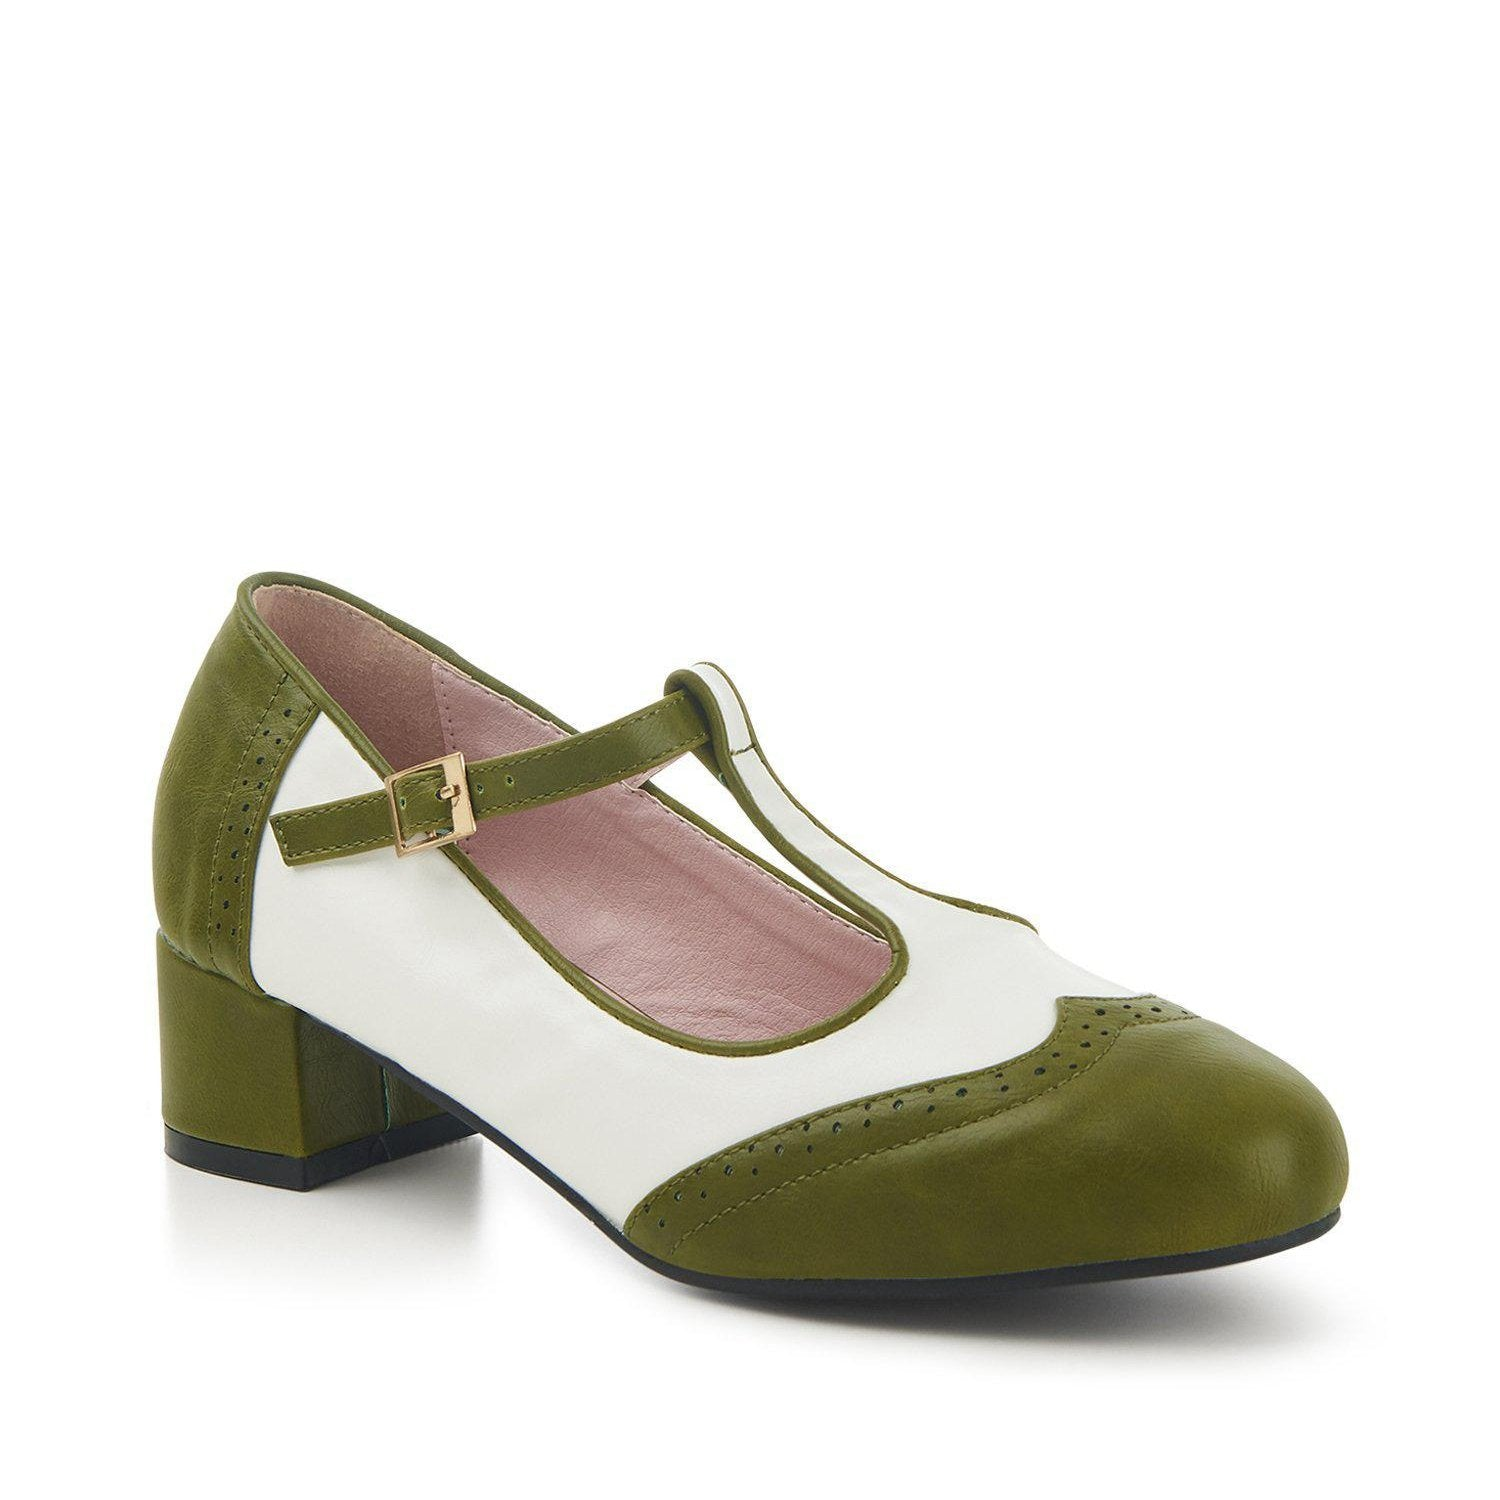 Lulu Hun Georgia Block Heel Shoes-Green/White-Vendemia